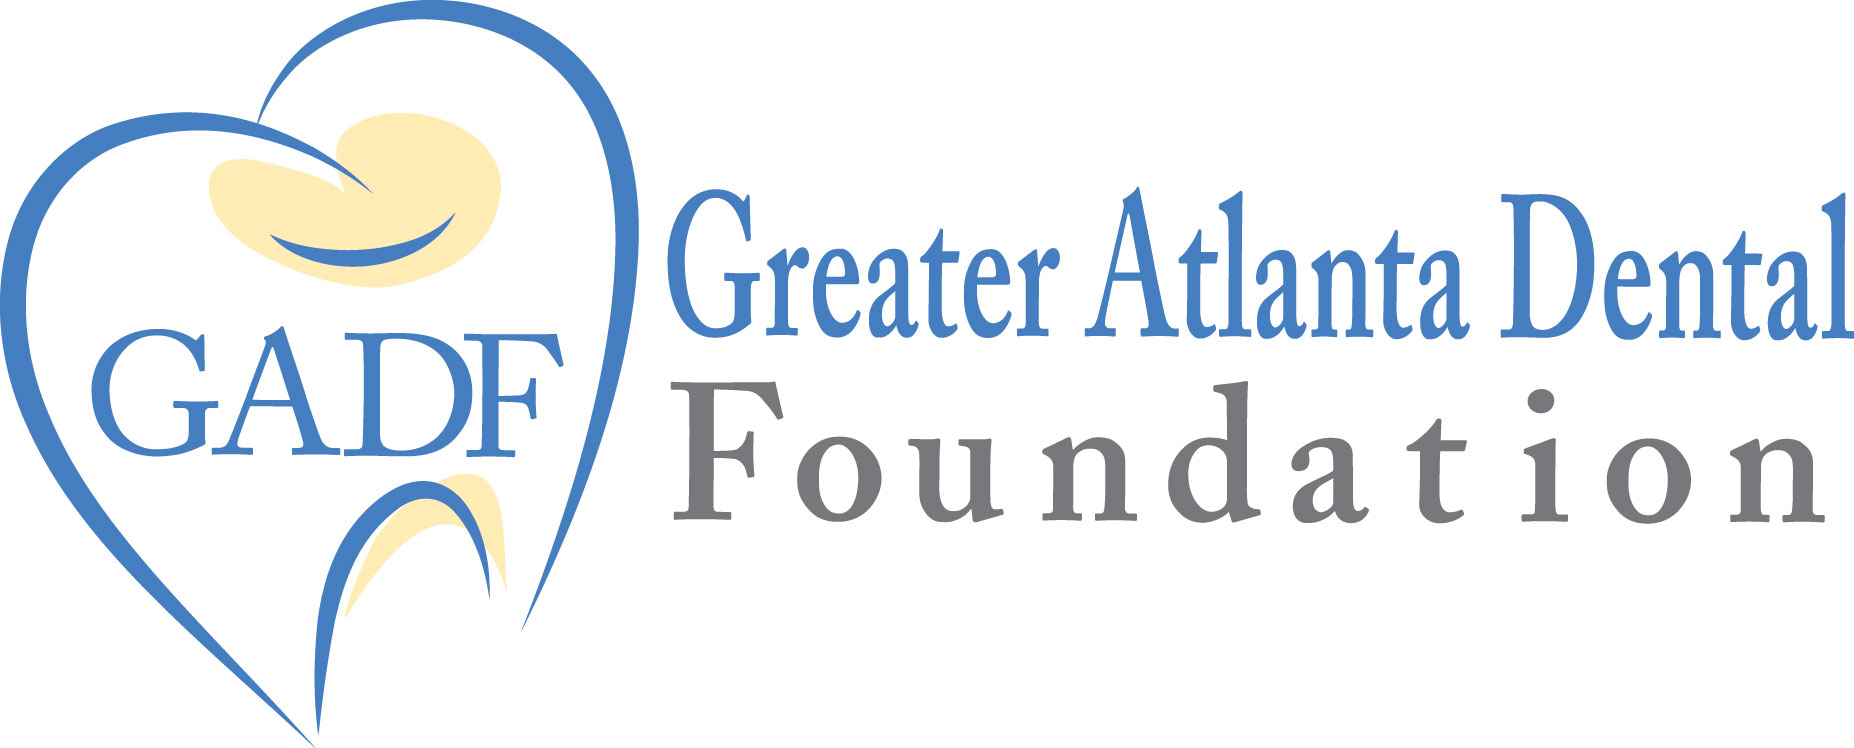 Greater Atlanta Dental Foundation